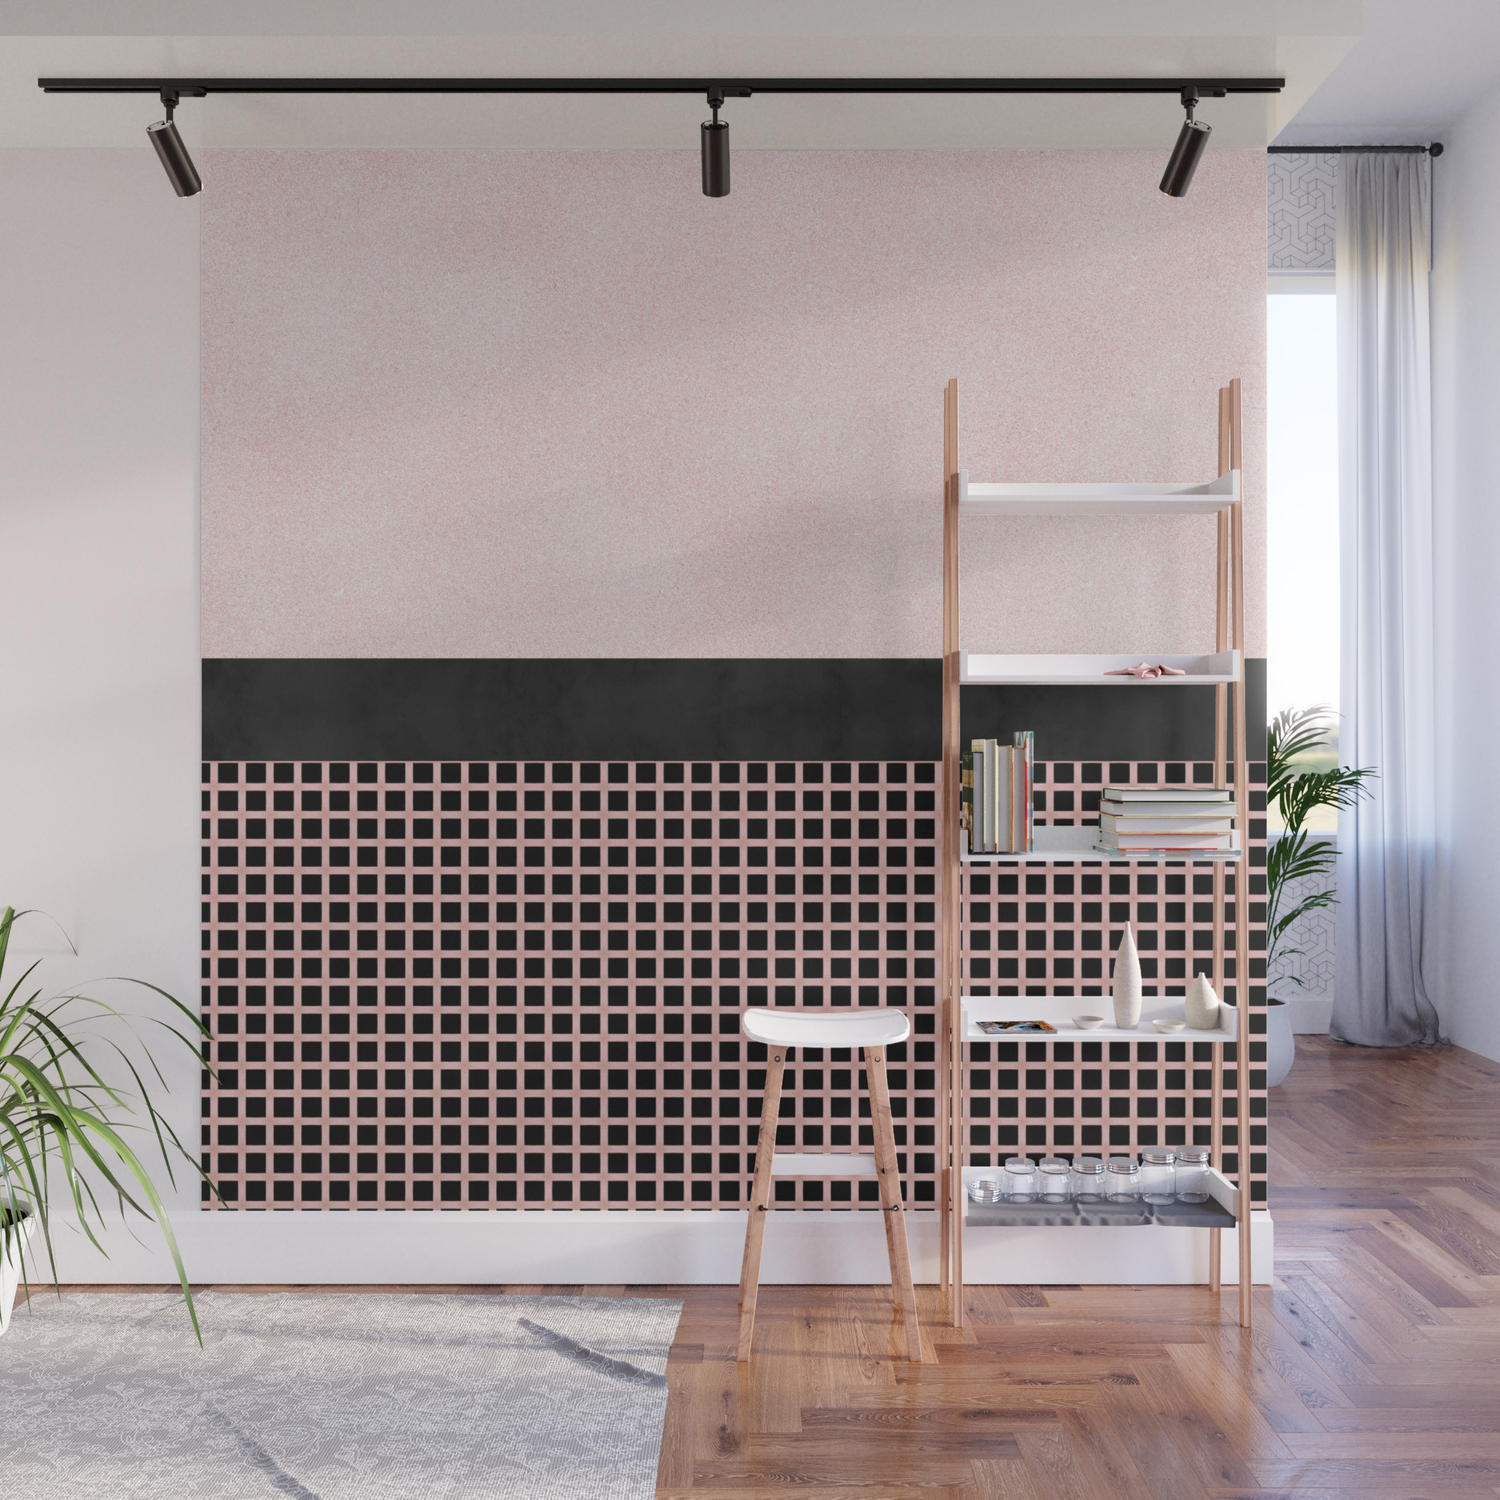 pbtextured-pink-design-with-black-checkered-pattern-wall-murals